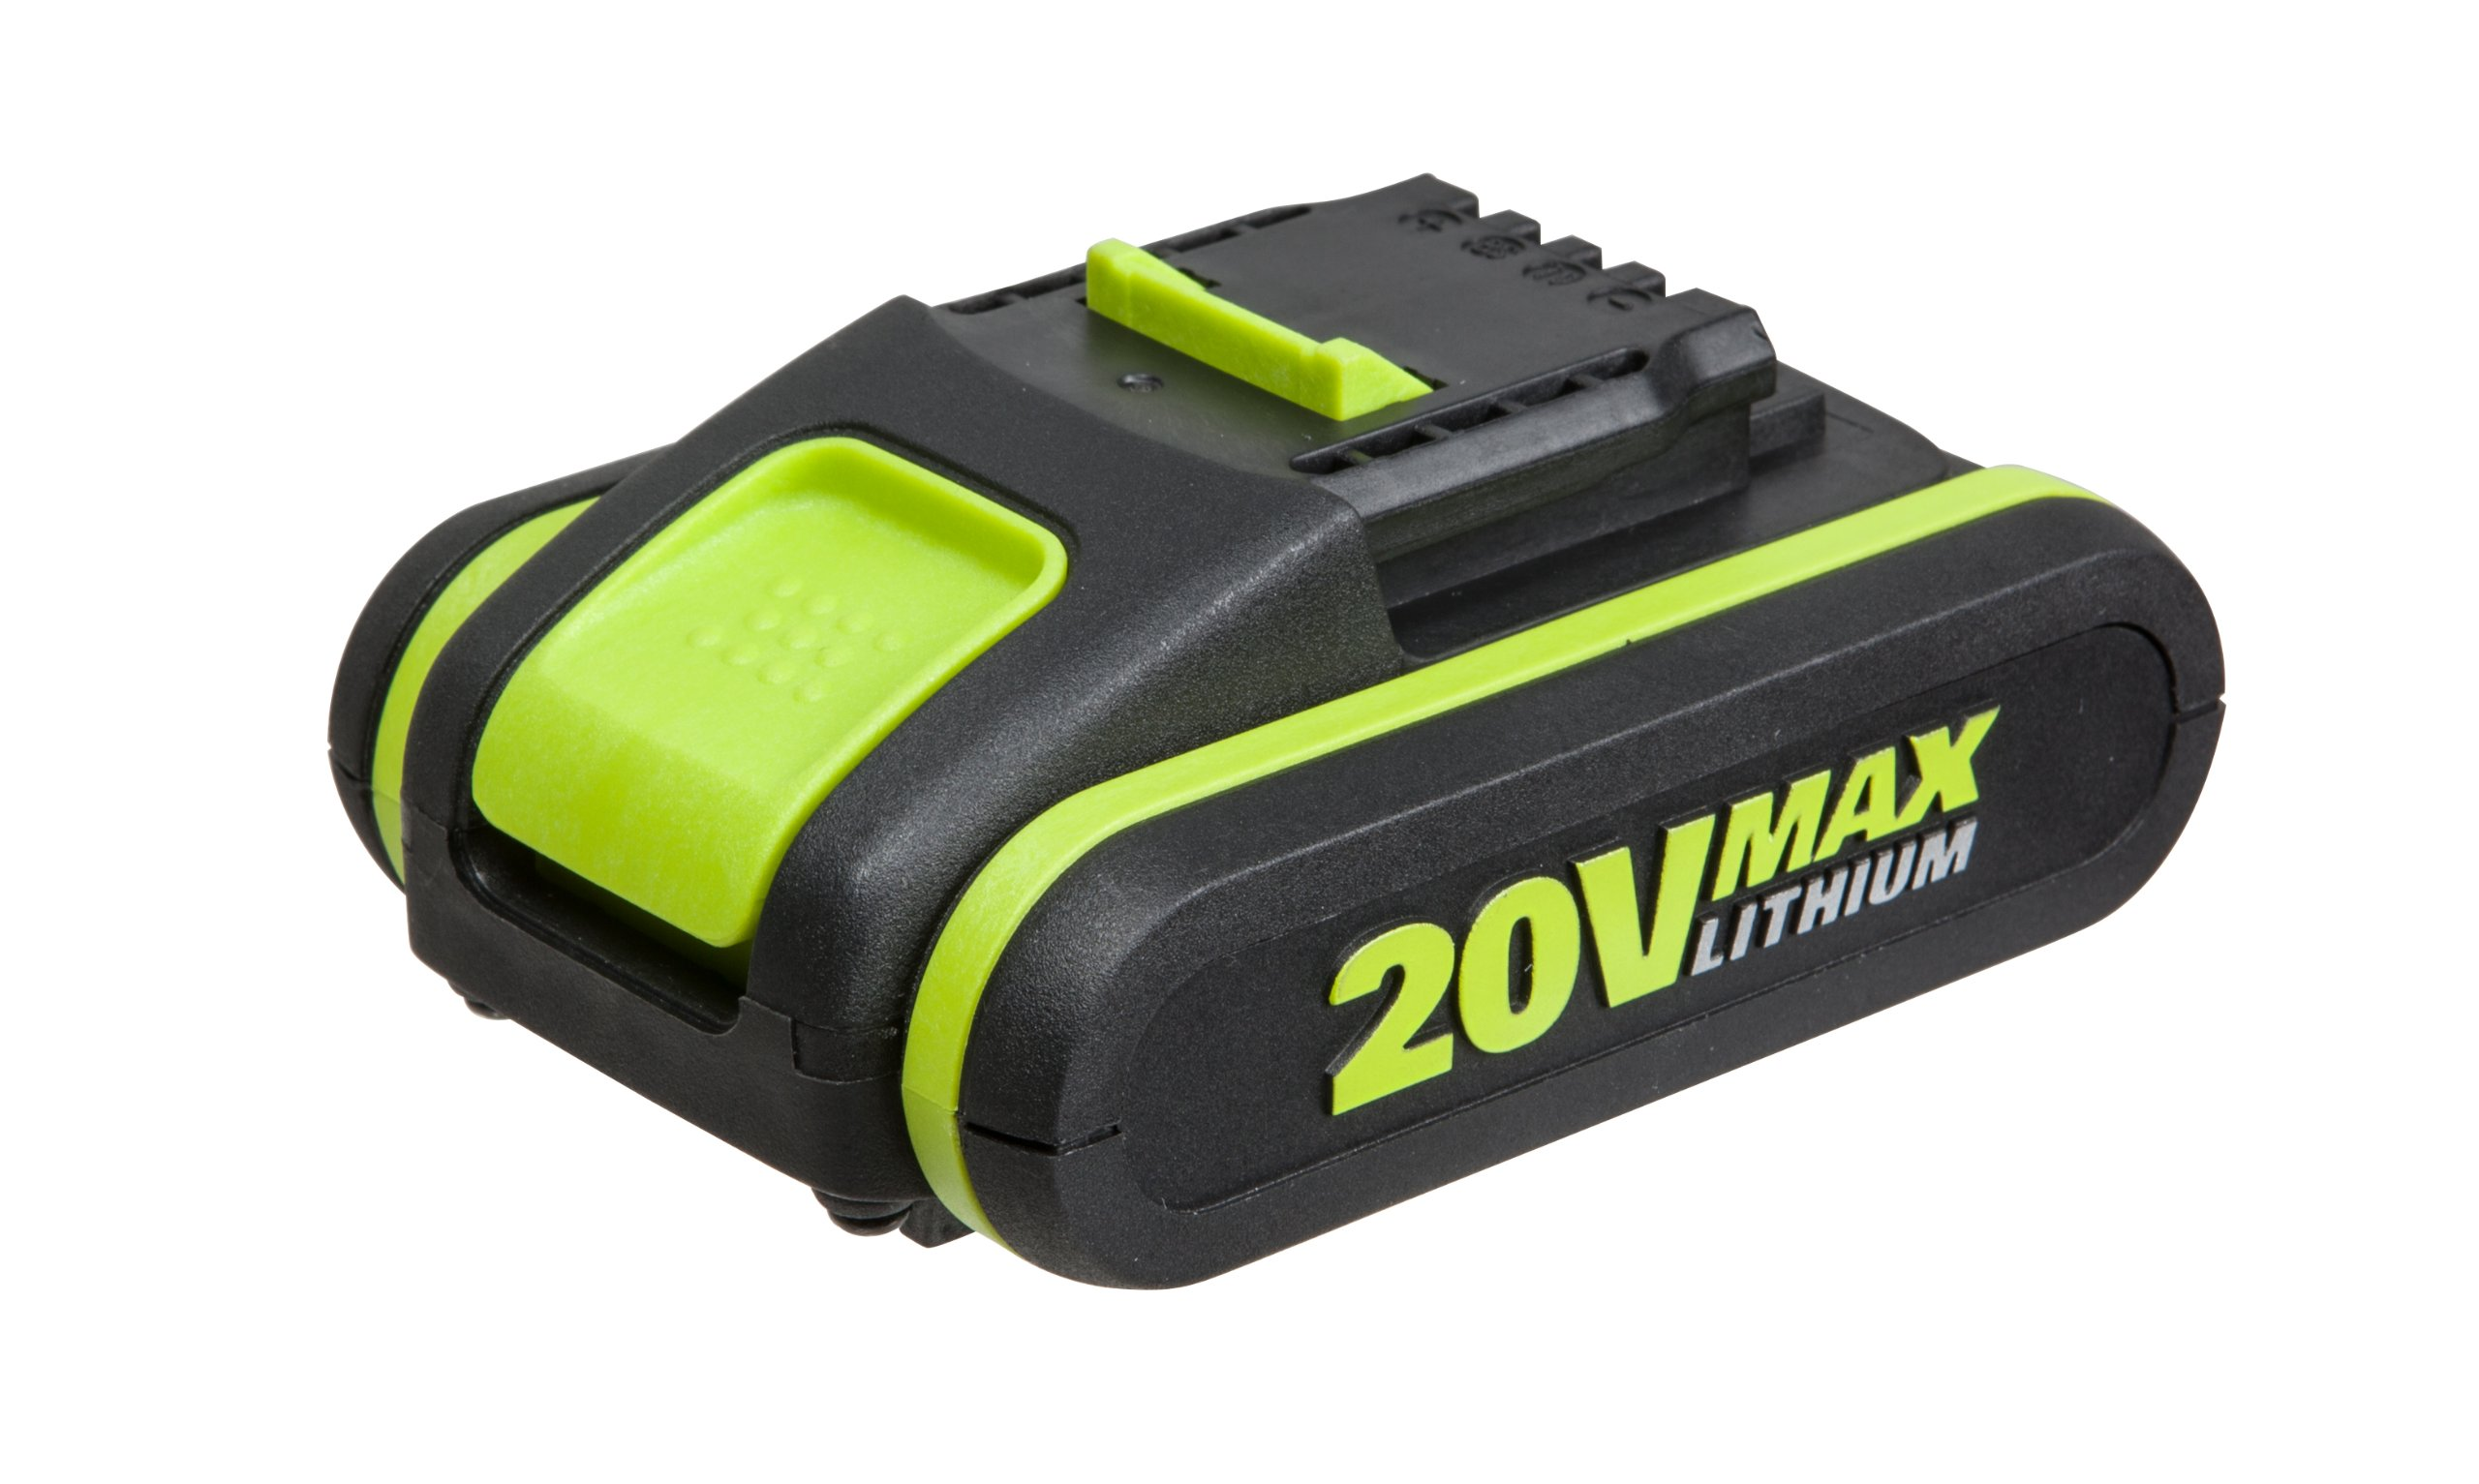 Rockwell RW9351 20v 2.0 Ah MAX Lithium-Ion Battery